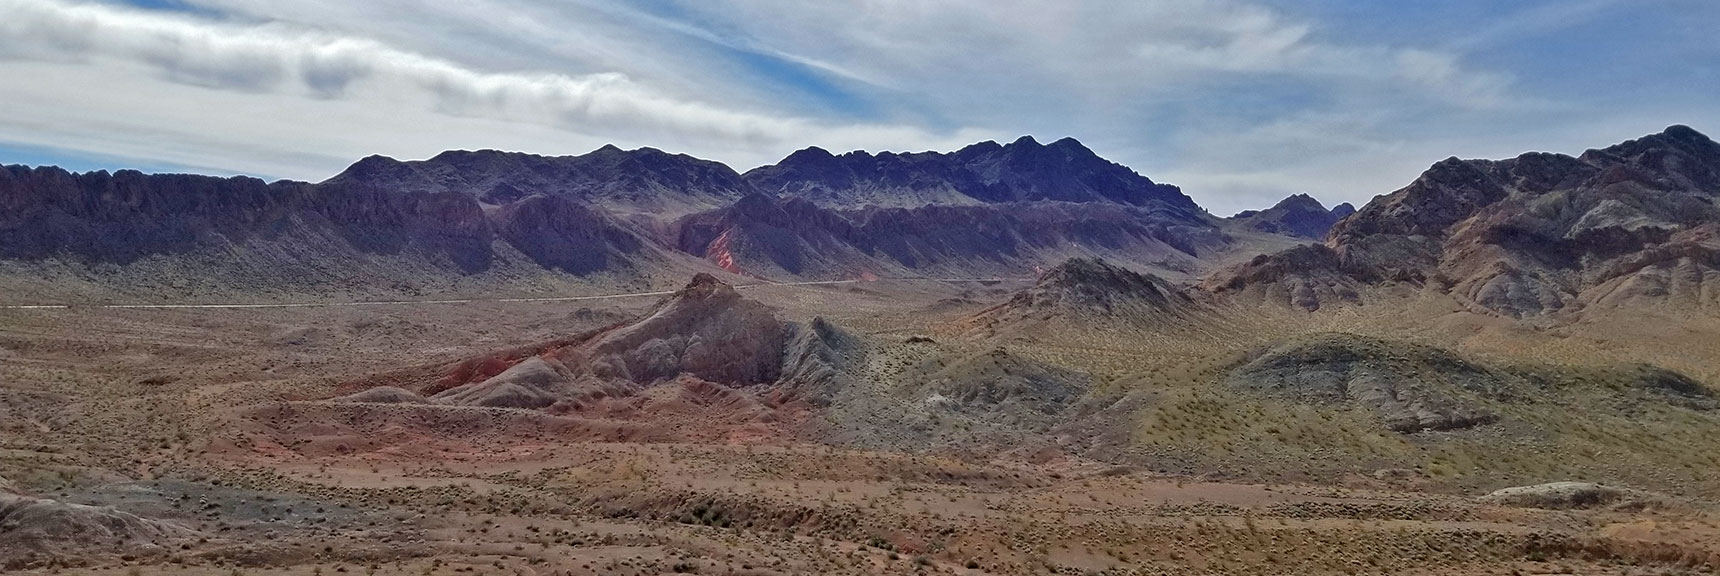 Black Mountains, Jimbalnan Wilderness Area from About Mile 32 On Northshore Road in Lake Mead National Park, Nevada